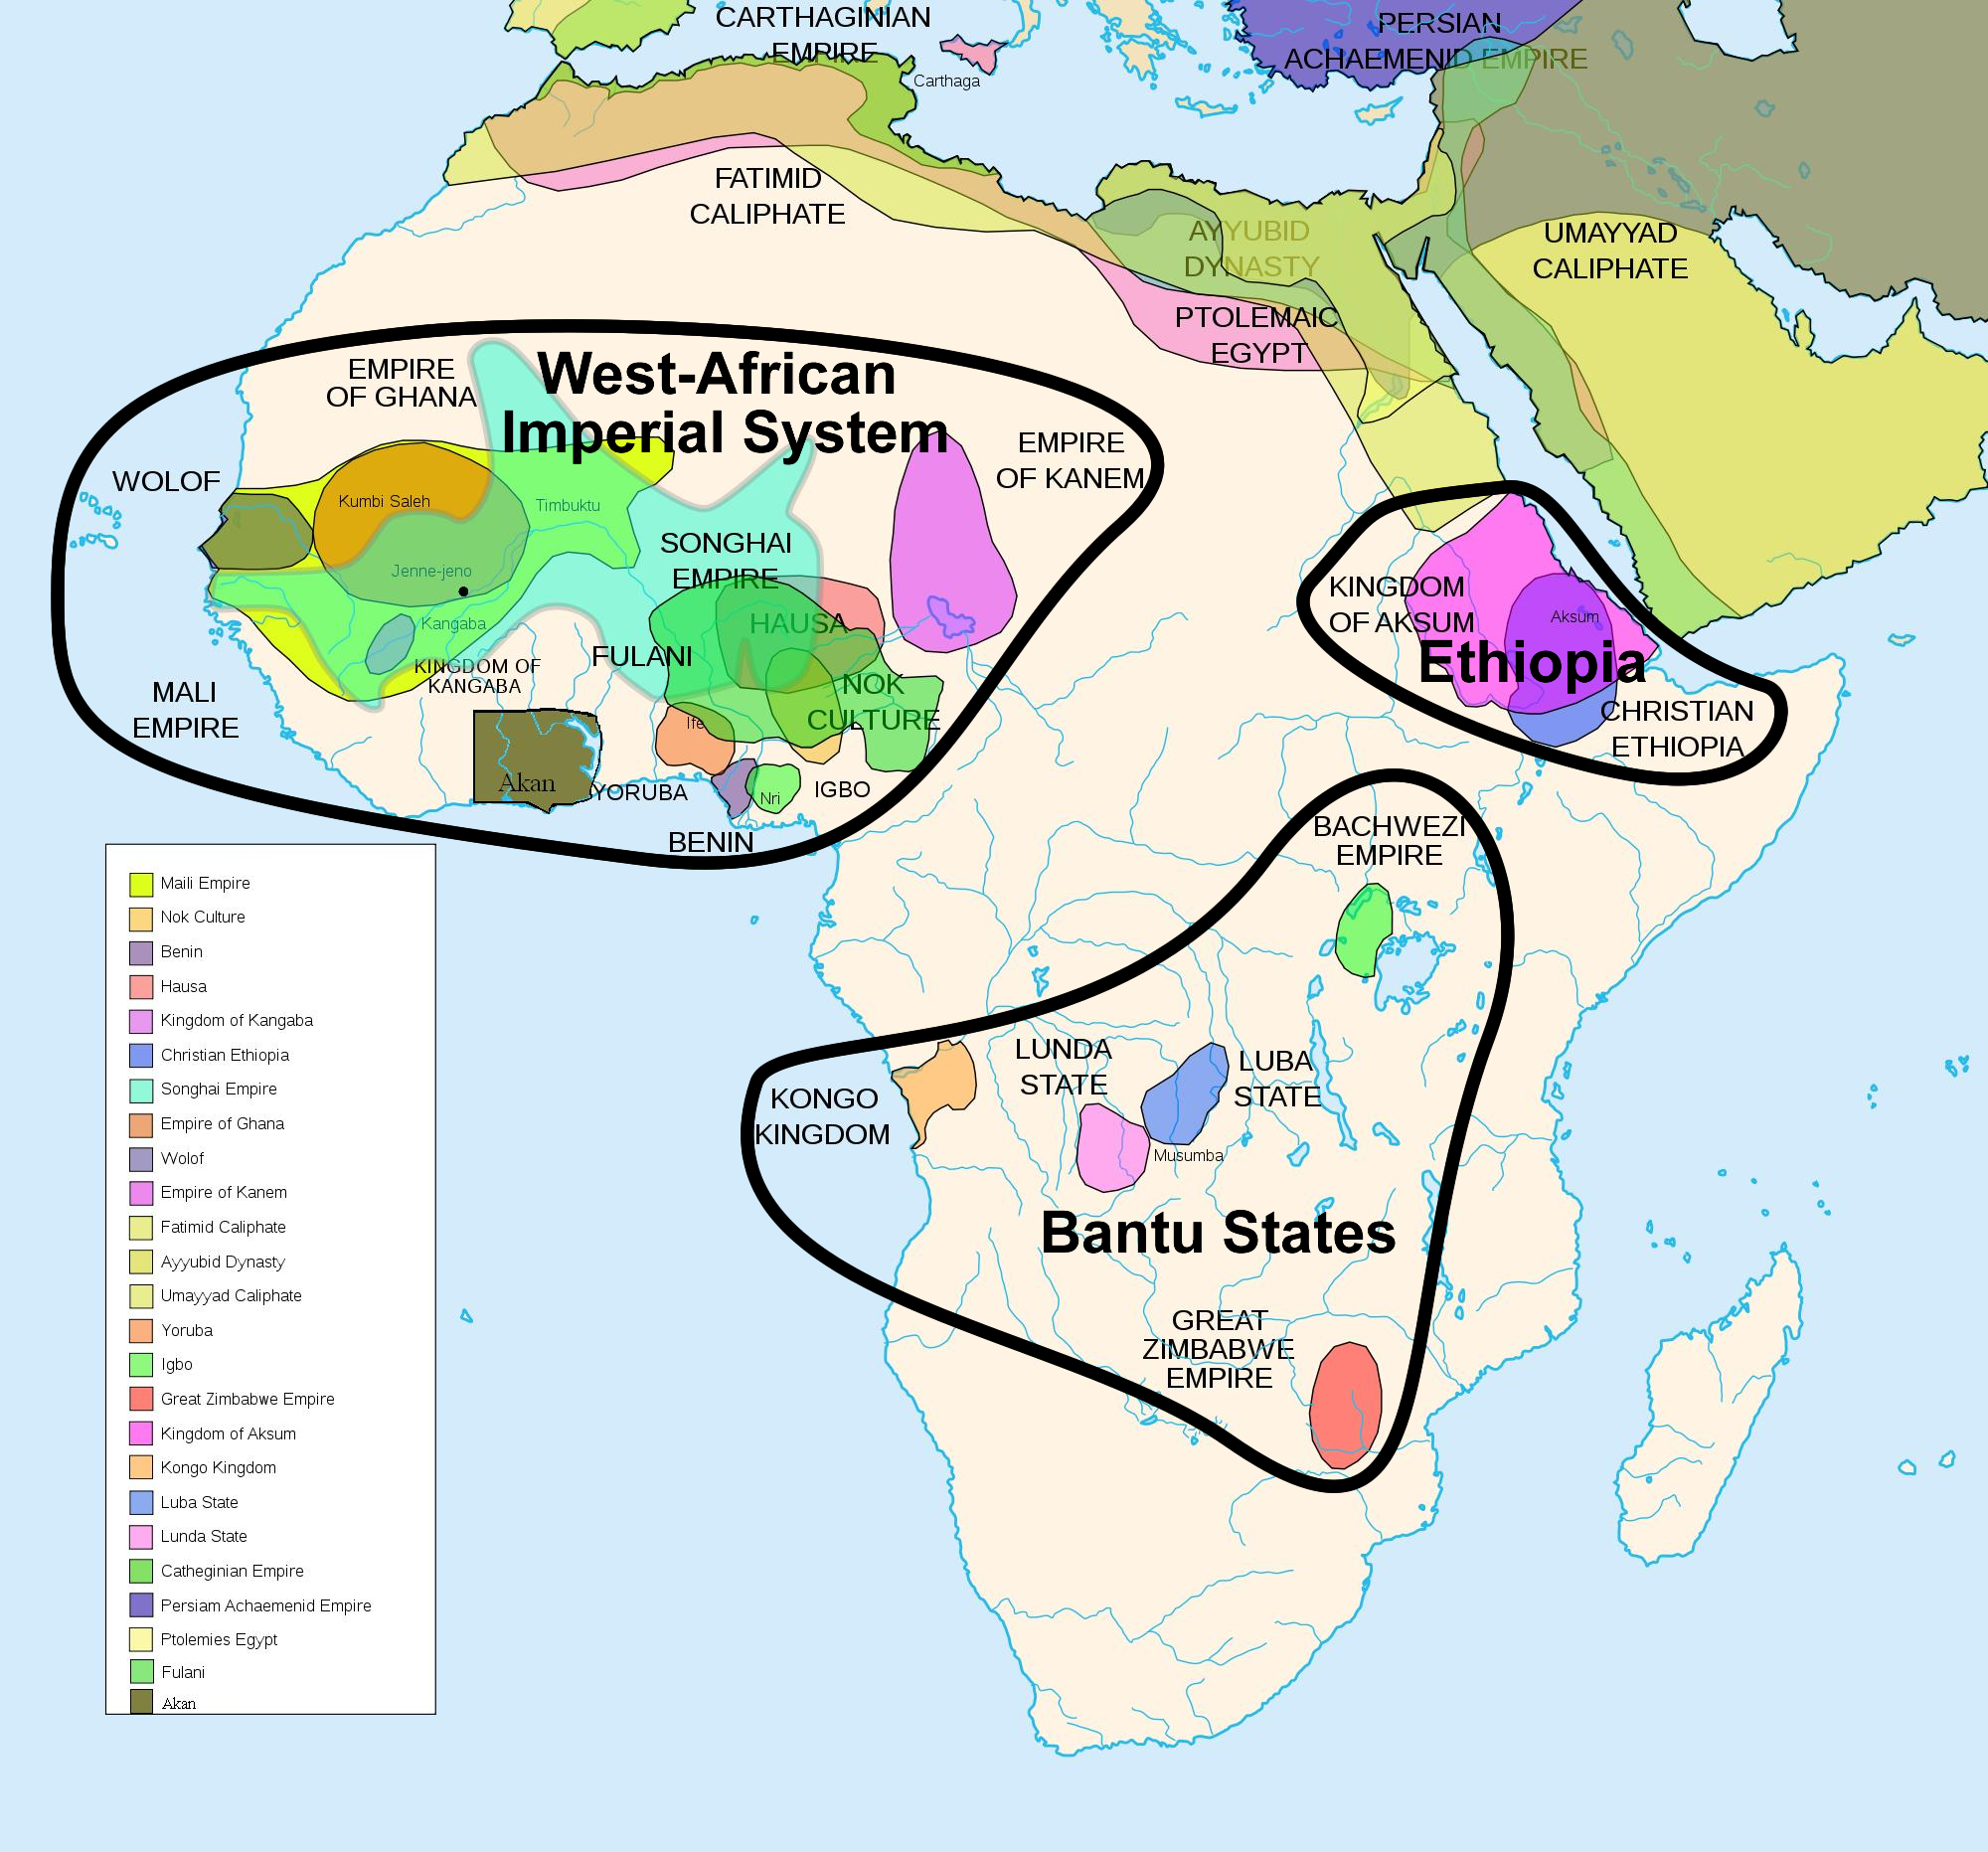 Fileafrican civilizations map imperialg wikimedia commons fileafrican civilizations map imperialg sciox Images